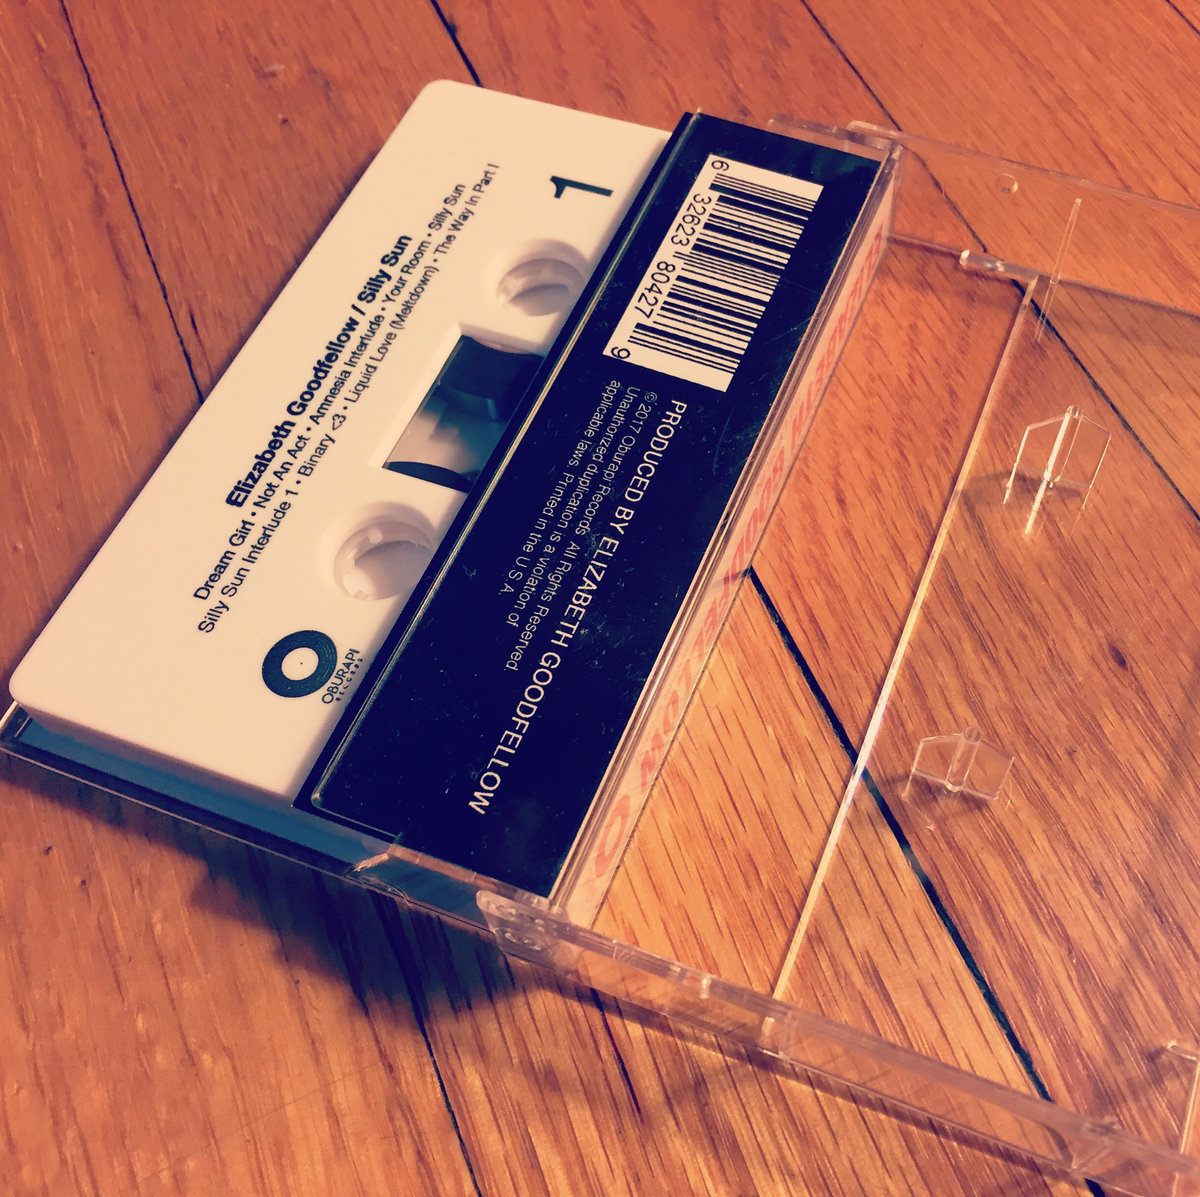 Cassette Tape With Fold Out J Card Featuring Photography By Stephanie Pia Cover Design Mark Nubar Full S And Credits